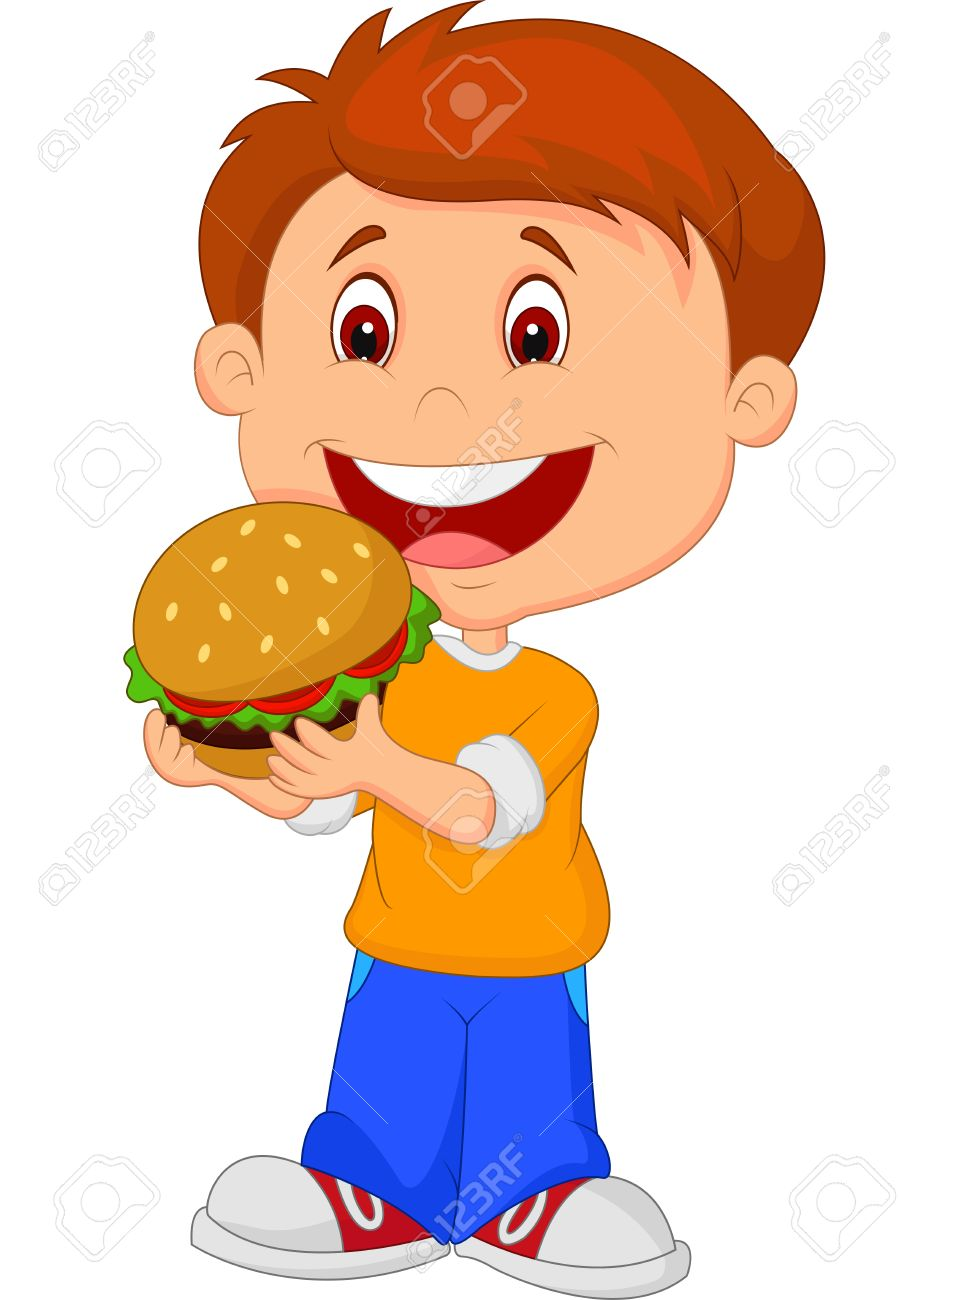 Eating Burger Clipart.